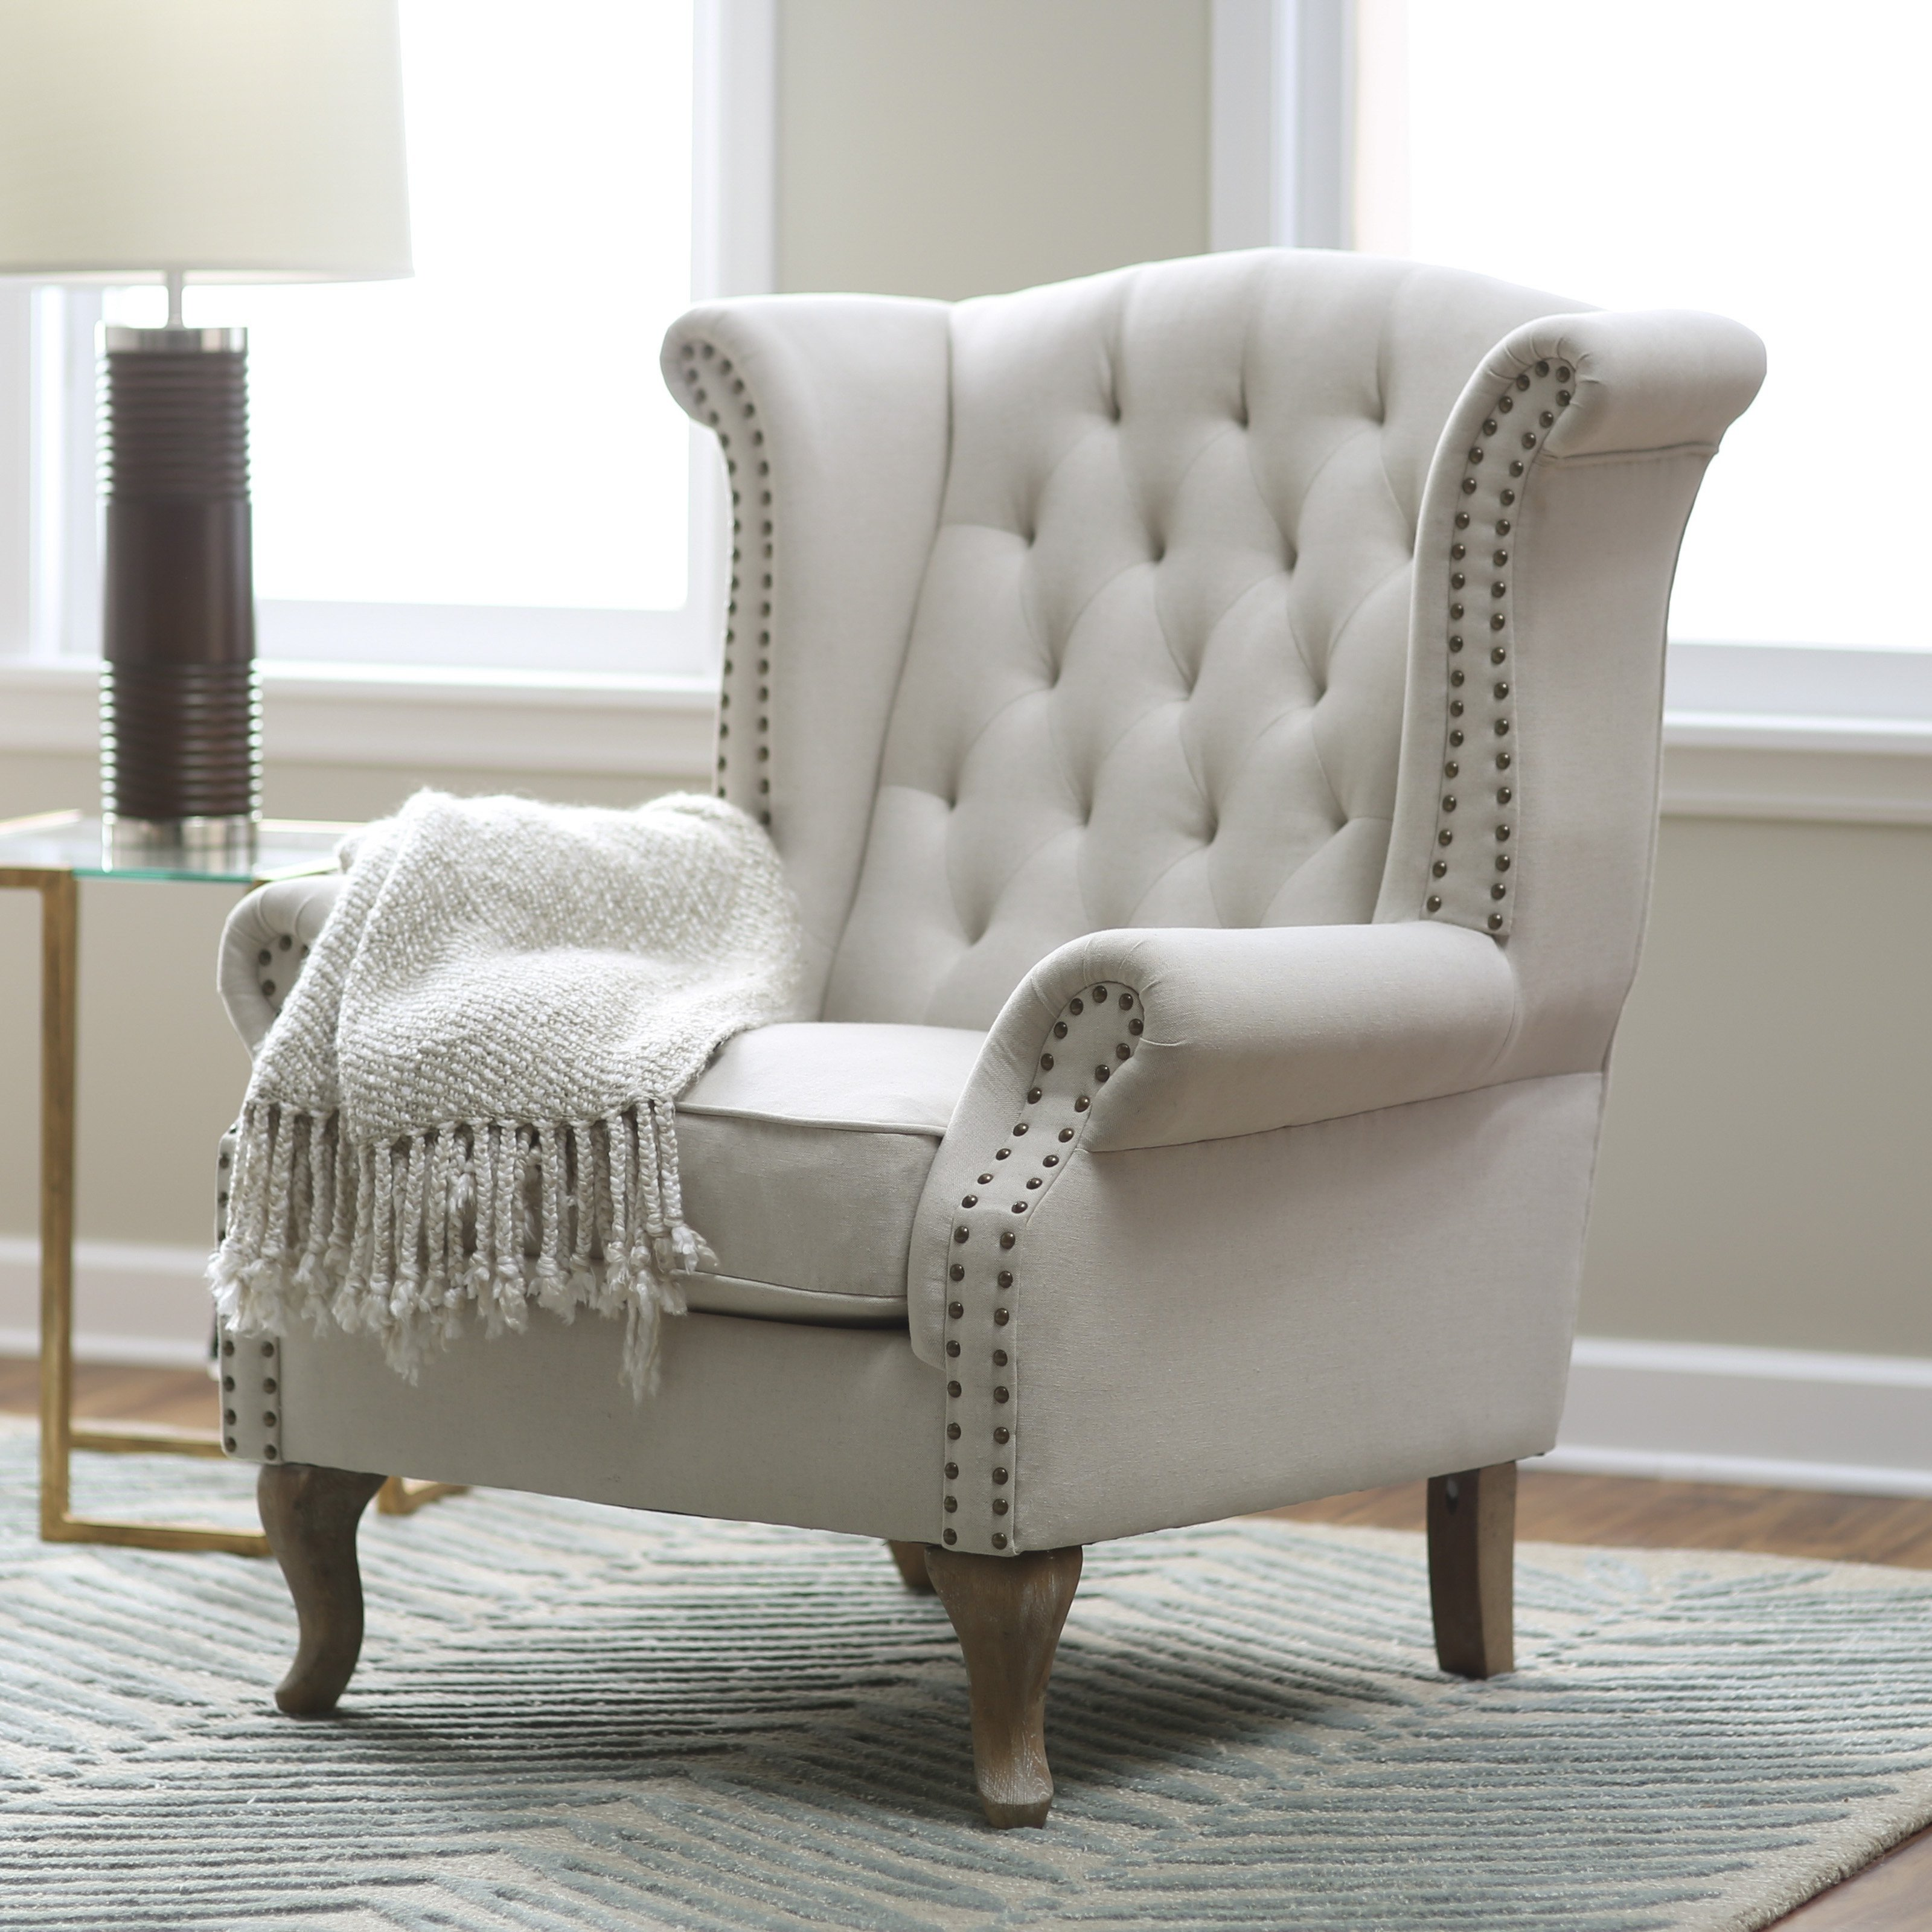 Comfortable Chairs Living Room Elegant fortable Living Room Chairs Design – Accent Chairs with Arms Throughout fortable Living